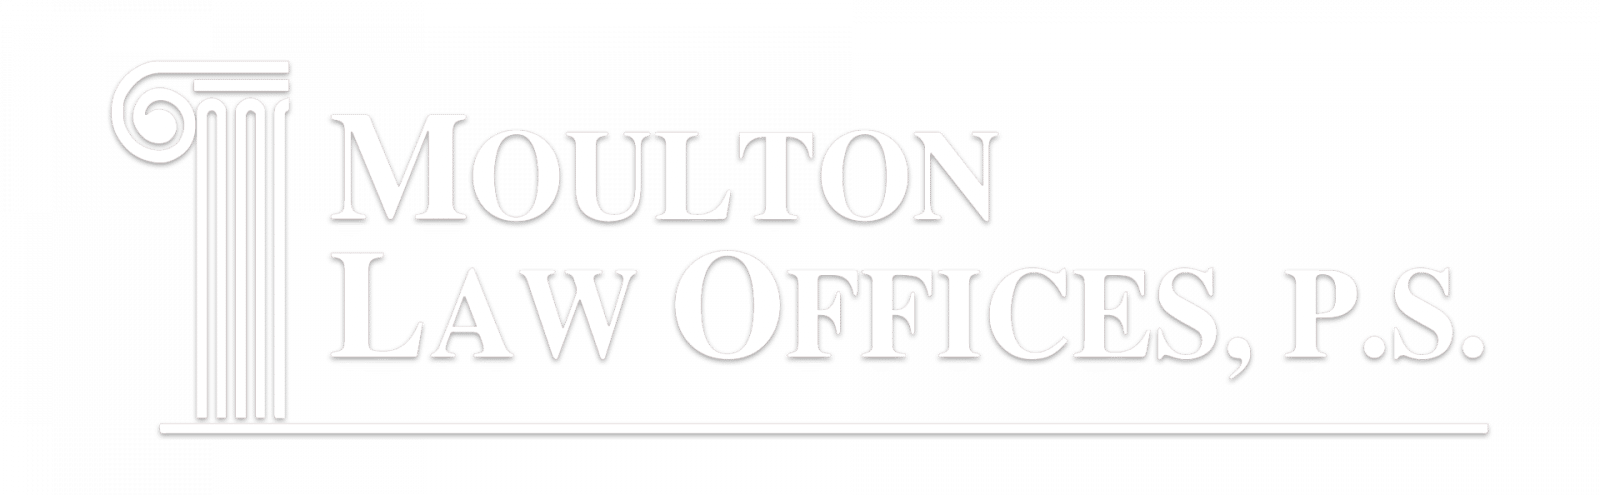 Moulton Law Offices